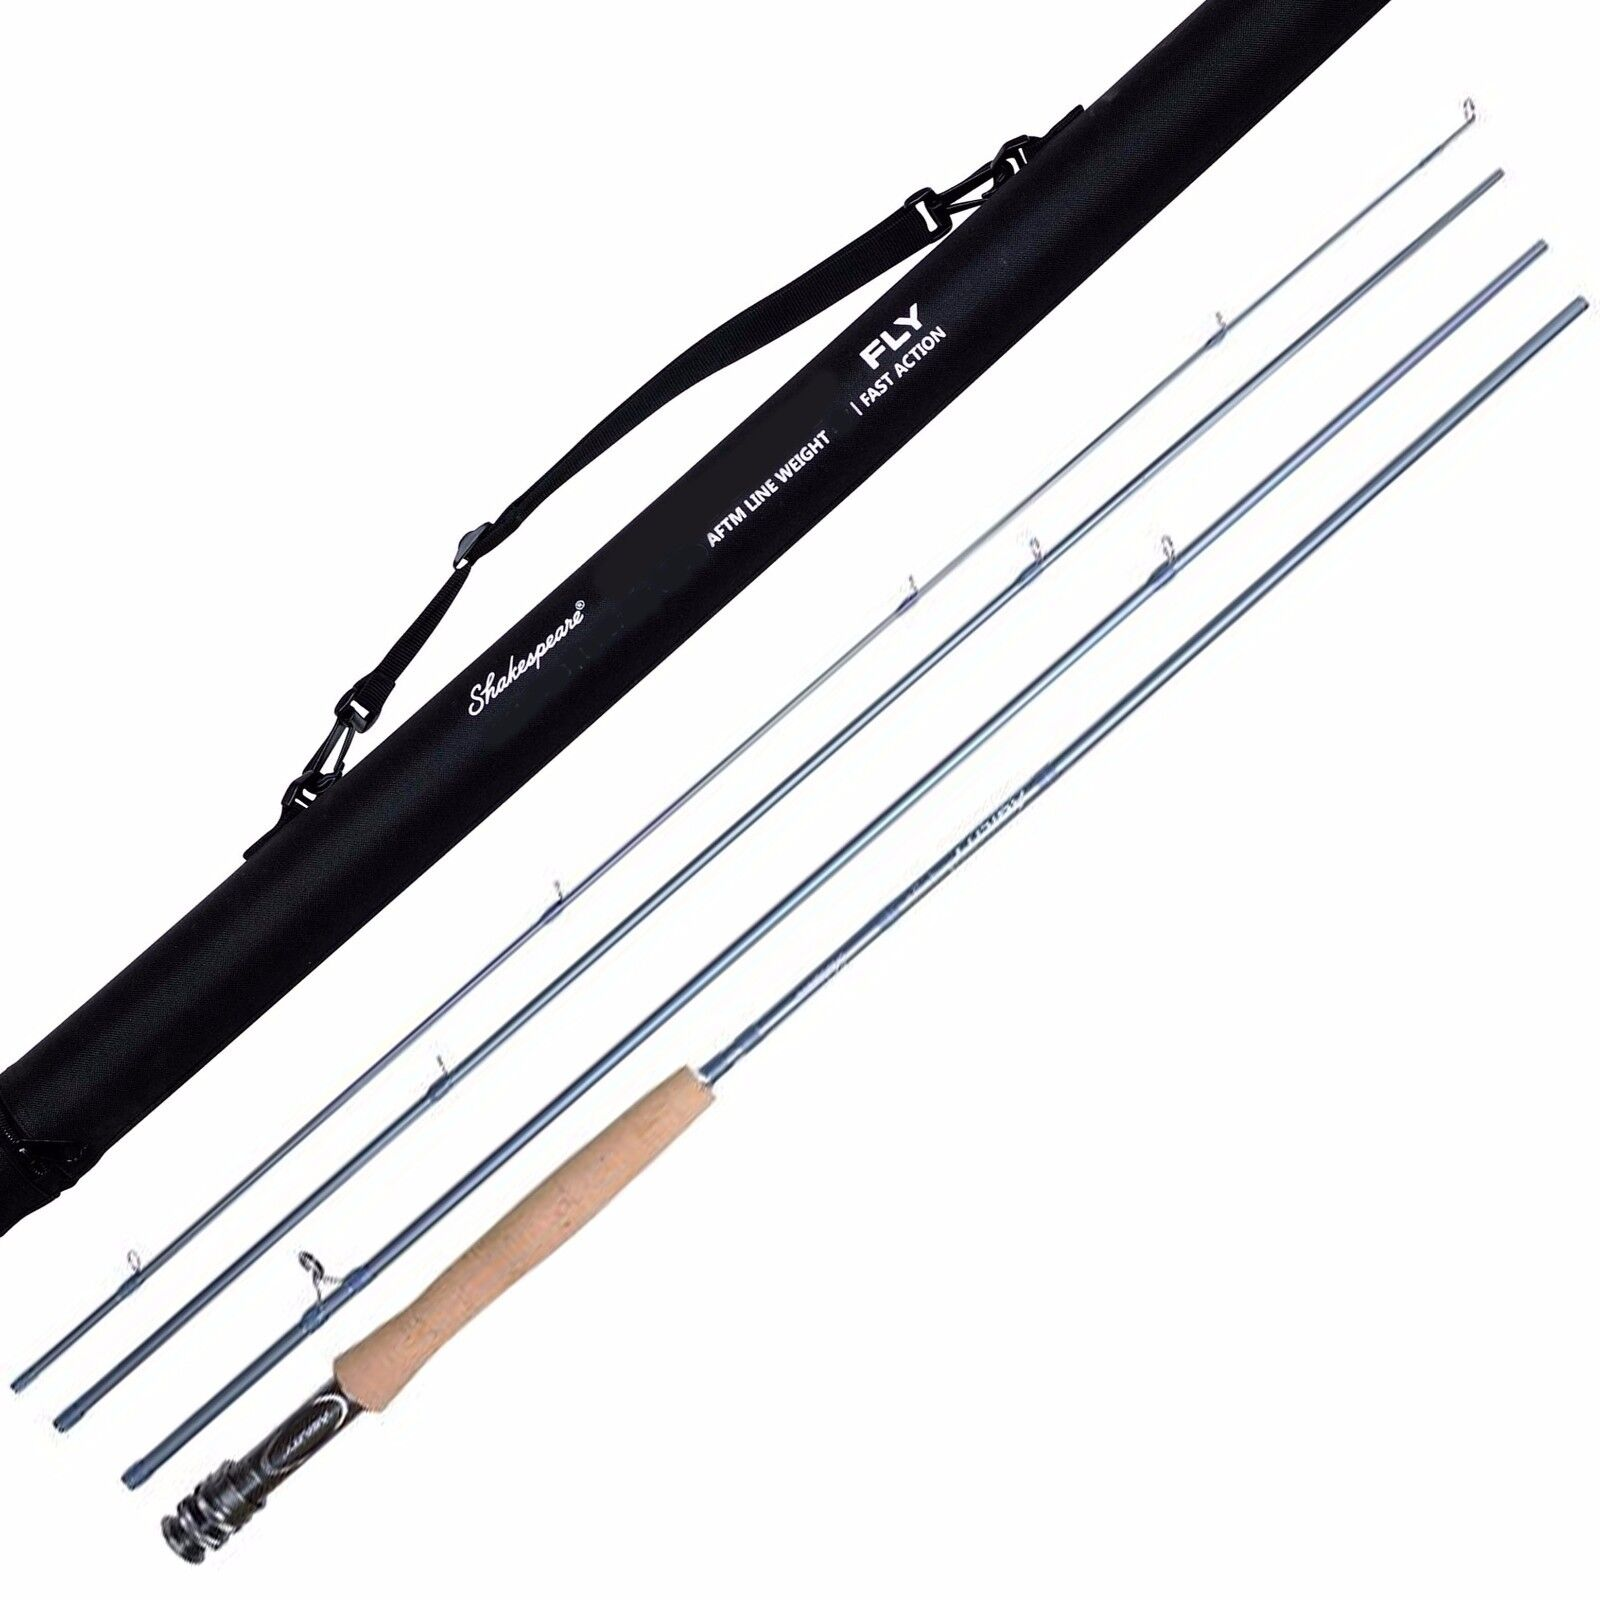 Shakespeare Agility 2 Carbon Fibre Four Piece Trout Fly Fishing Rods